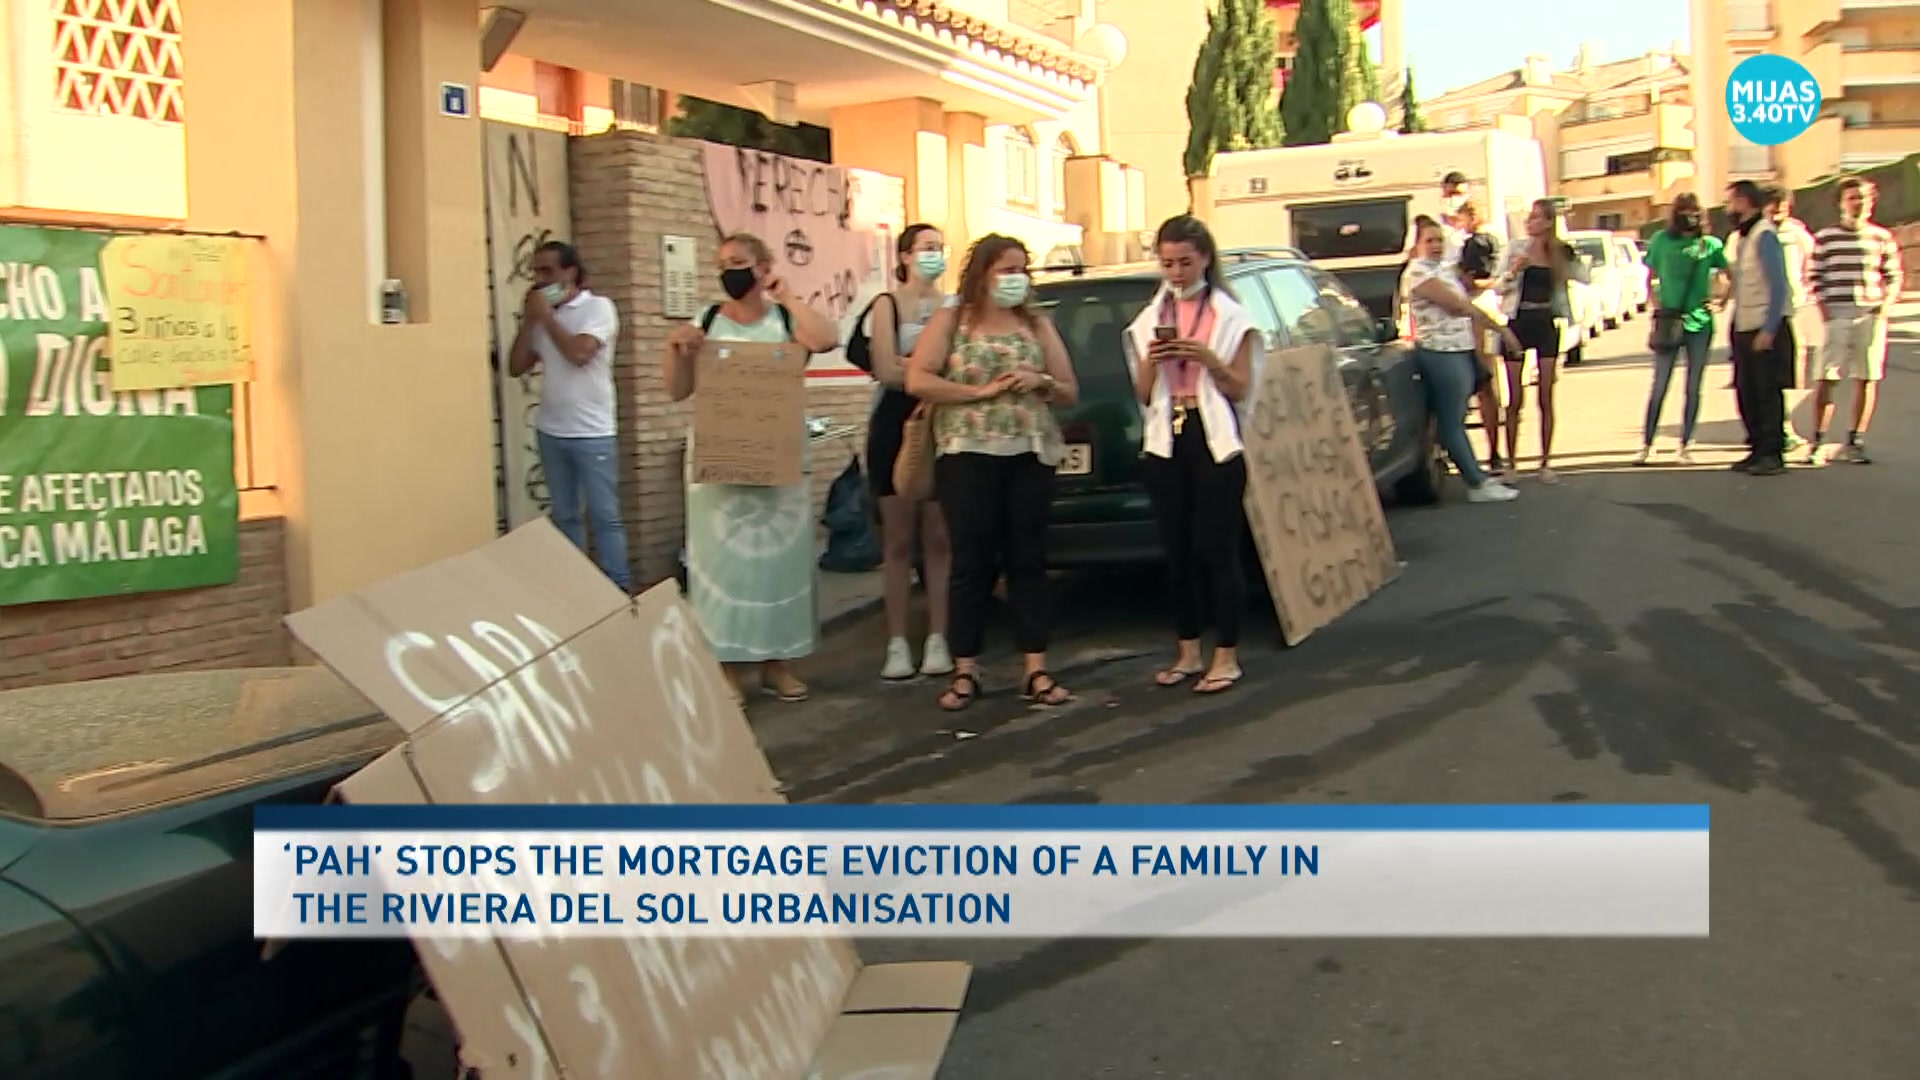 The 'PAH' mediates to stop an eviction in Mijas for at least one month